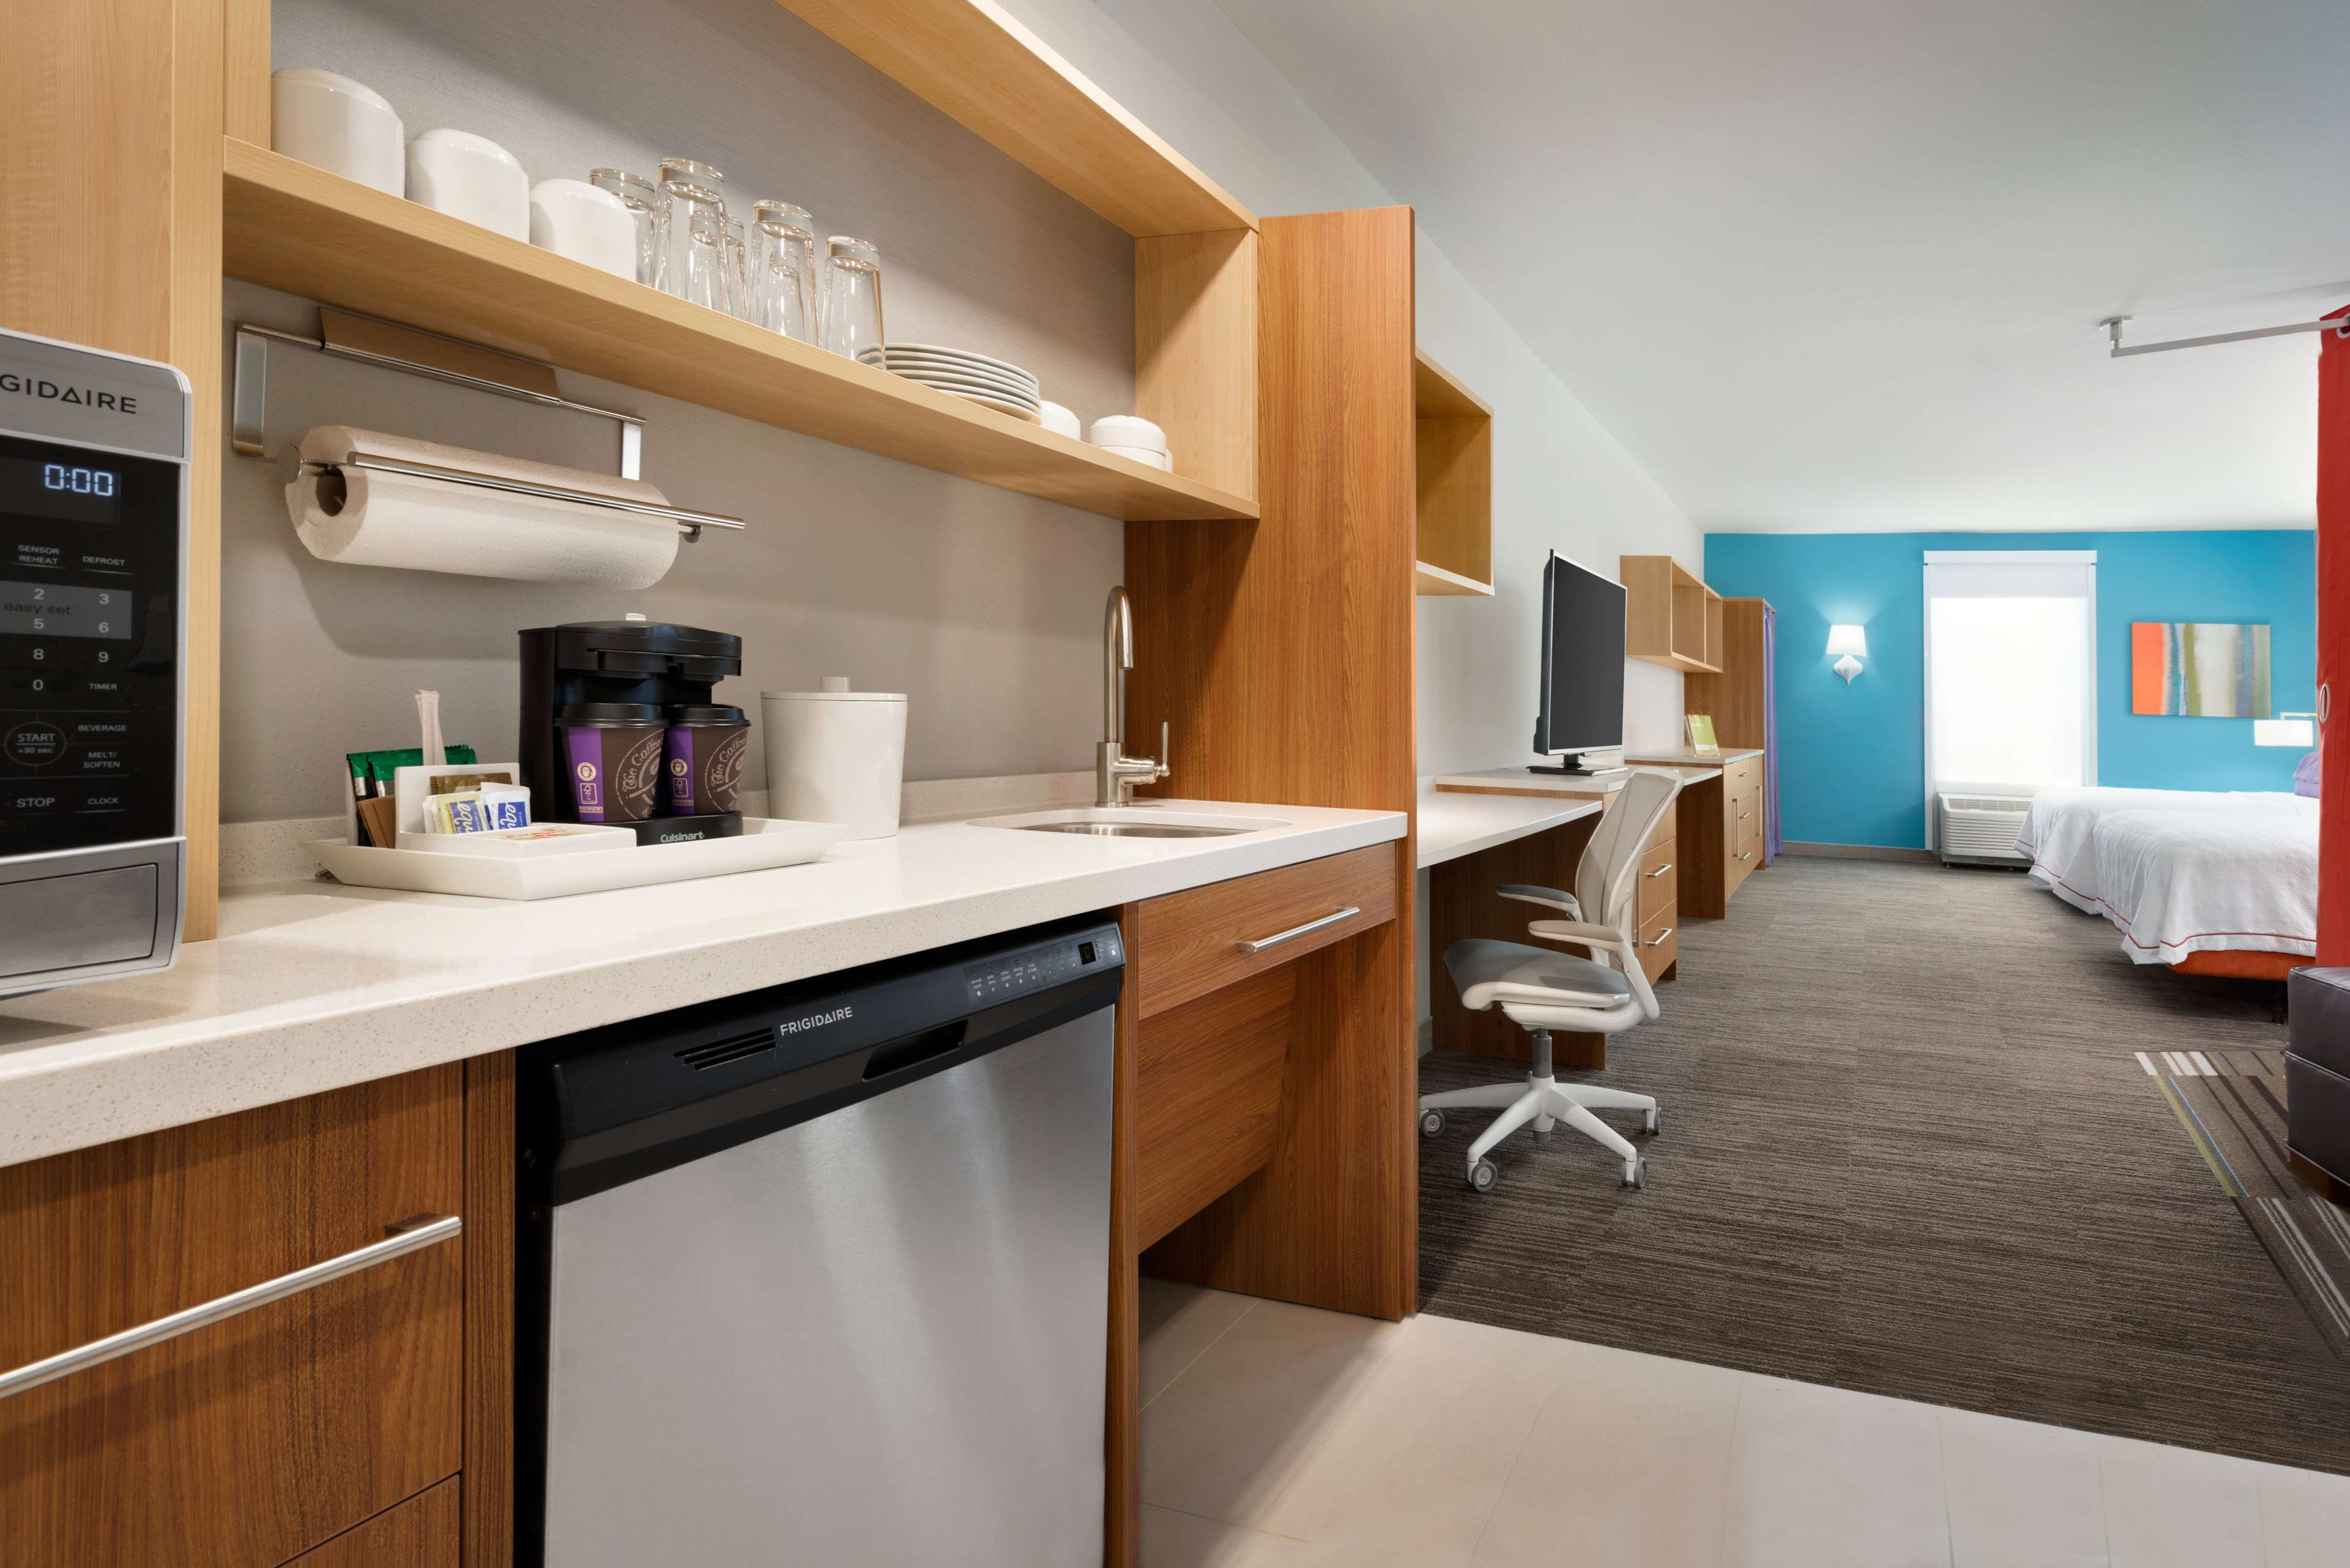 Home2 Suites by Hilton Roanoke image 28